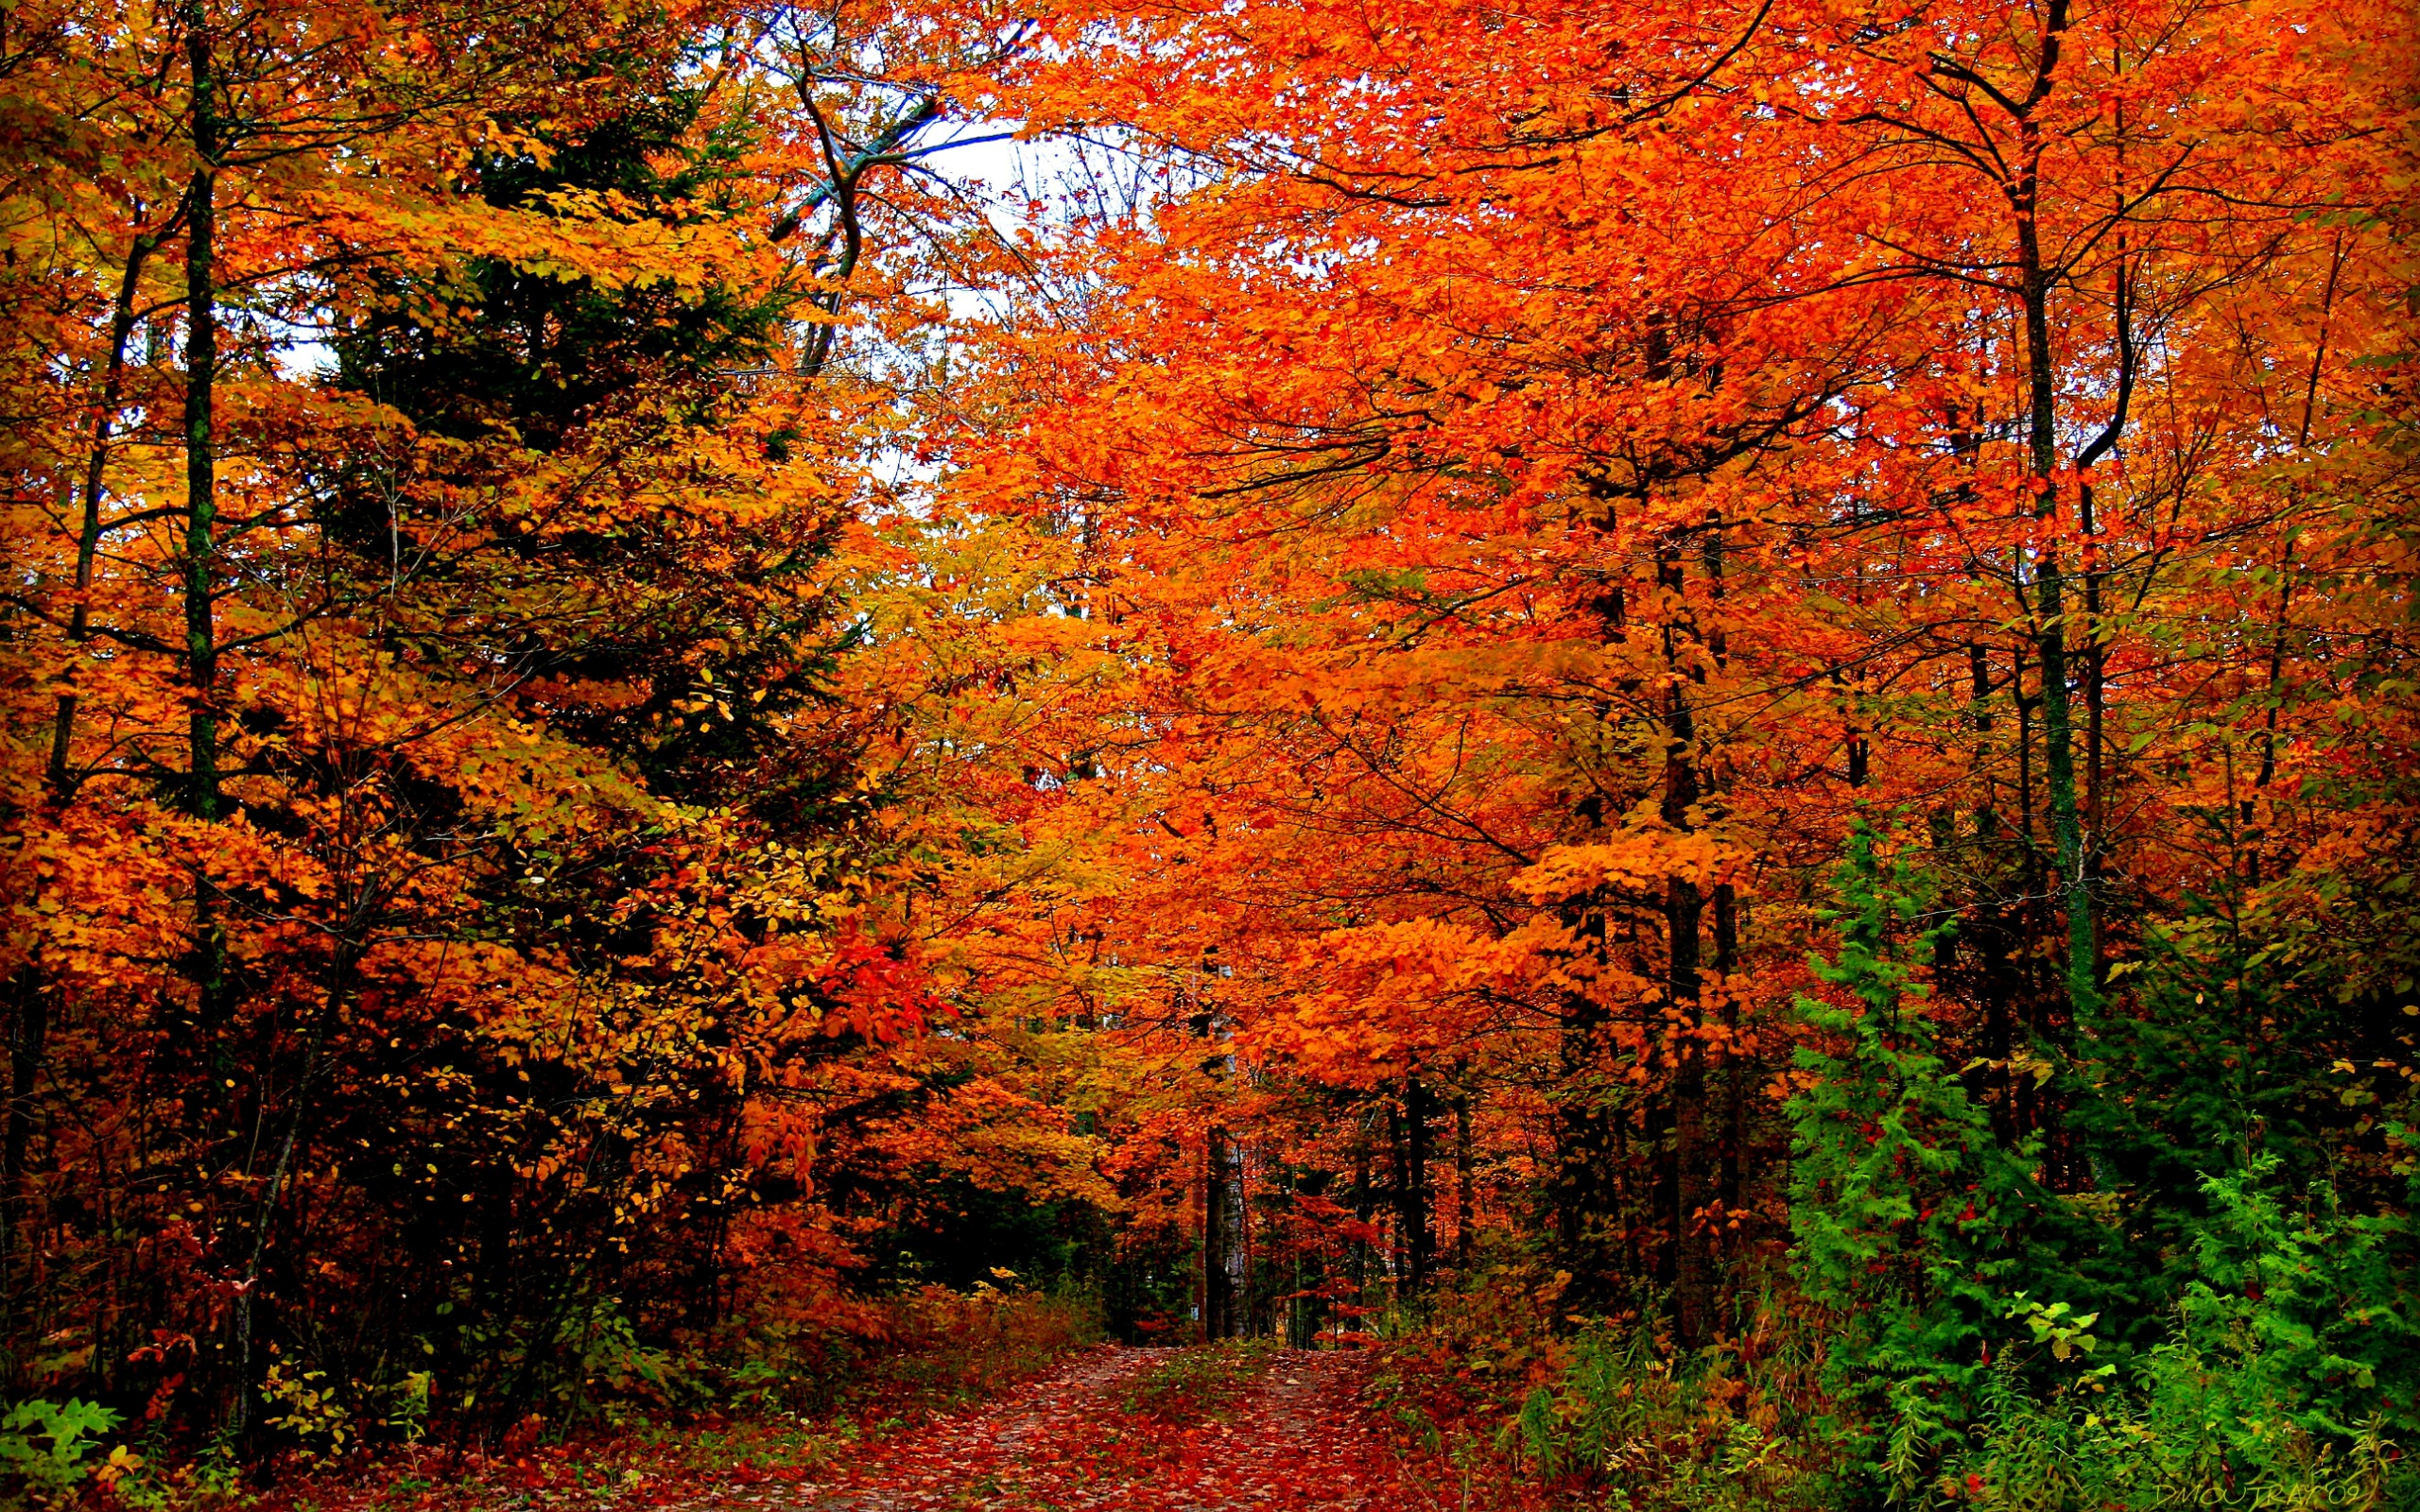 Autumn Free Wallpaper - Autumn Colors Wallpapers - HD Wallpapers 93175